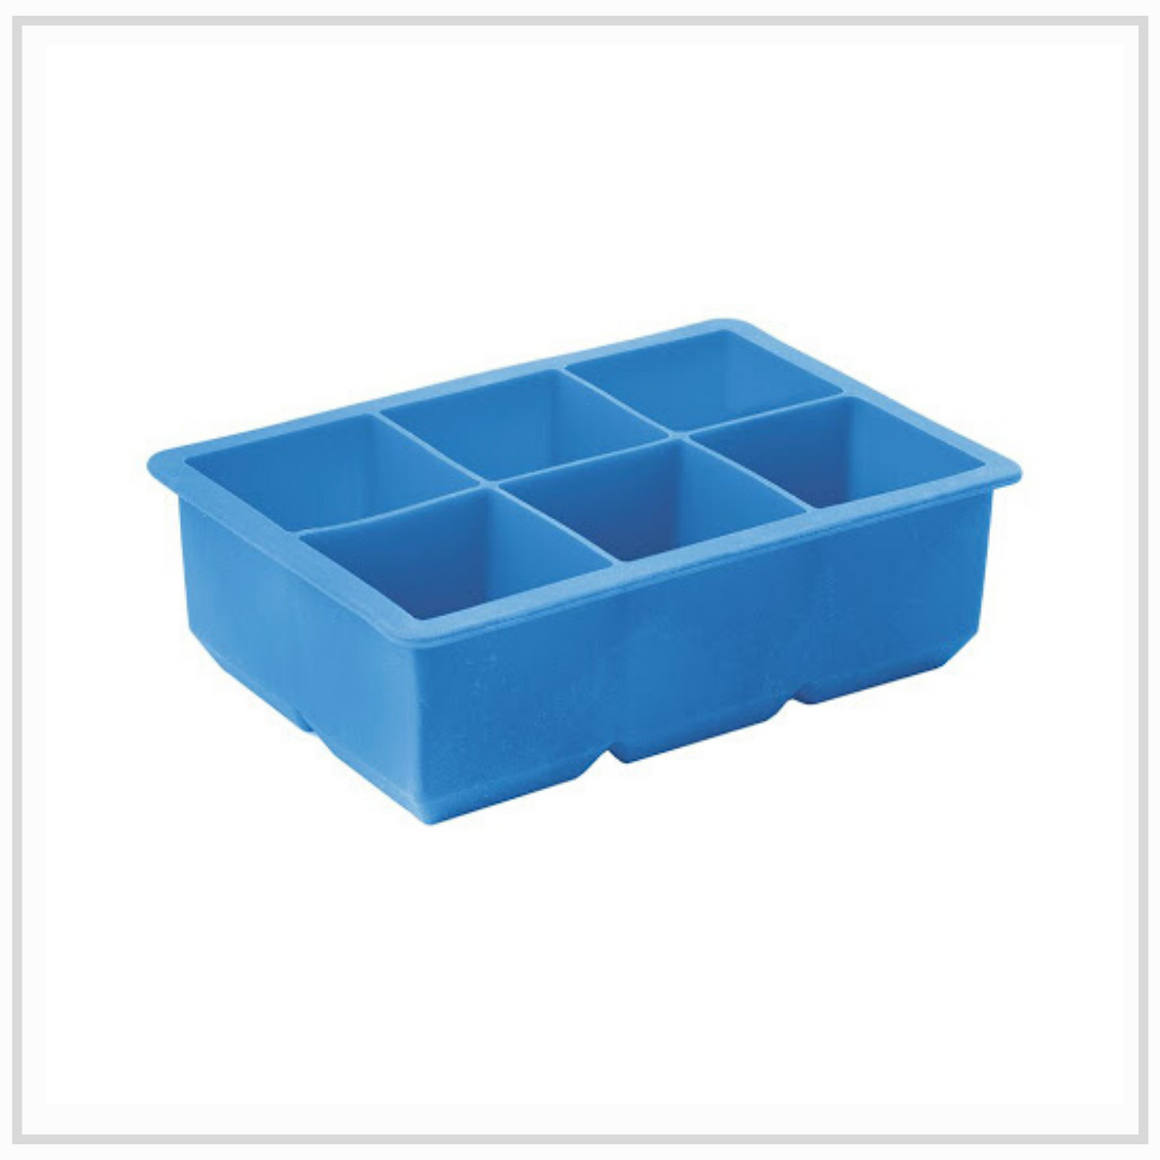 Epicurean Super Ice Cube Tray